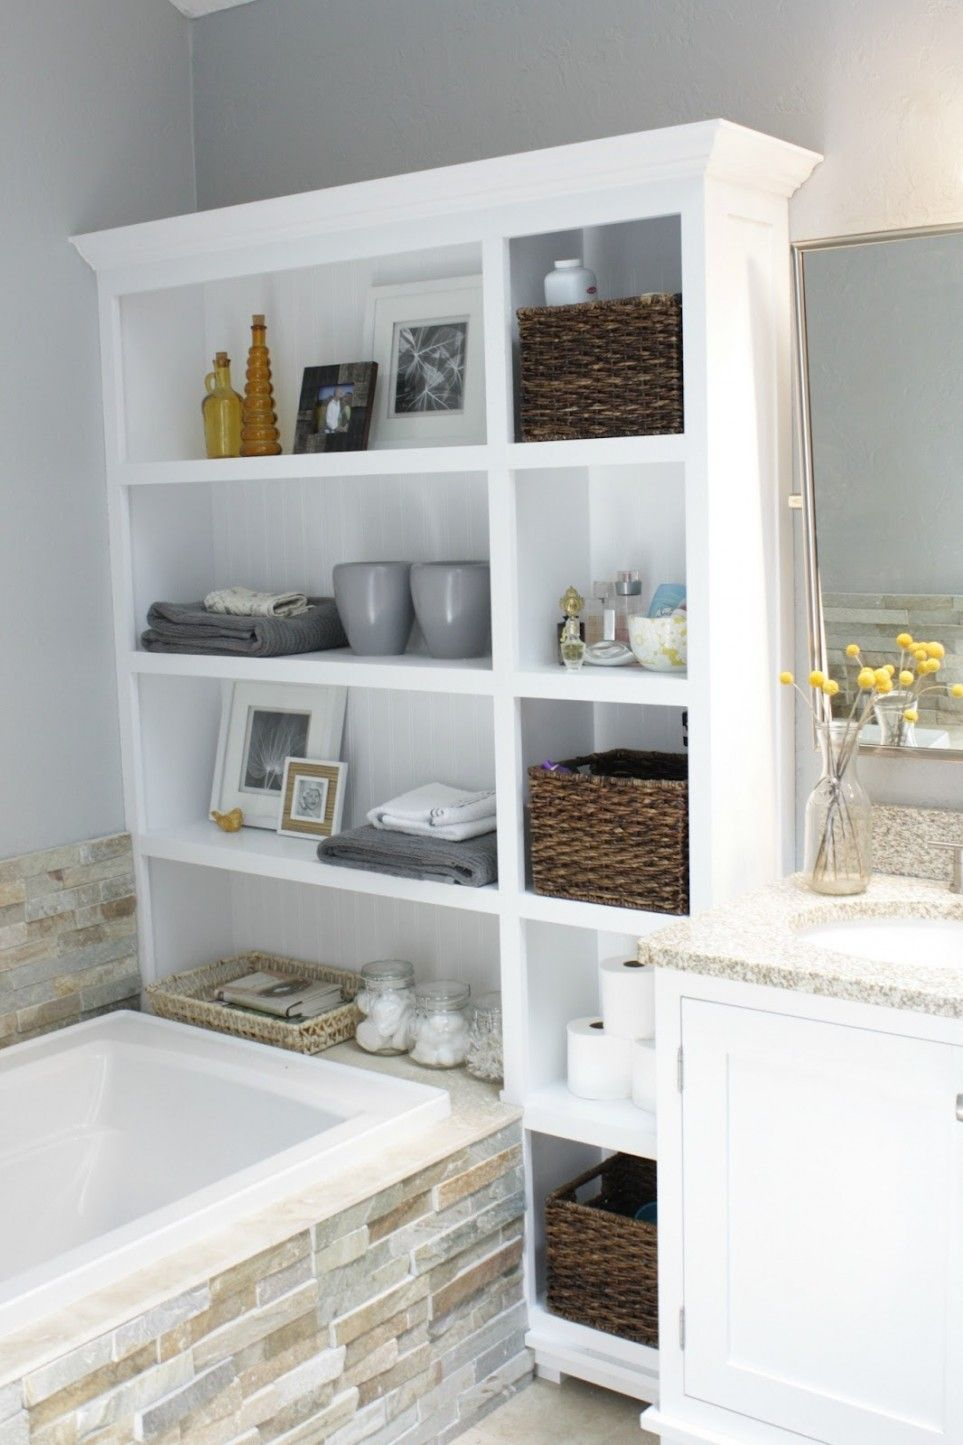 stone platform bathtub in catchy white bathroom design with small ...